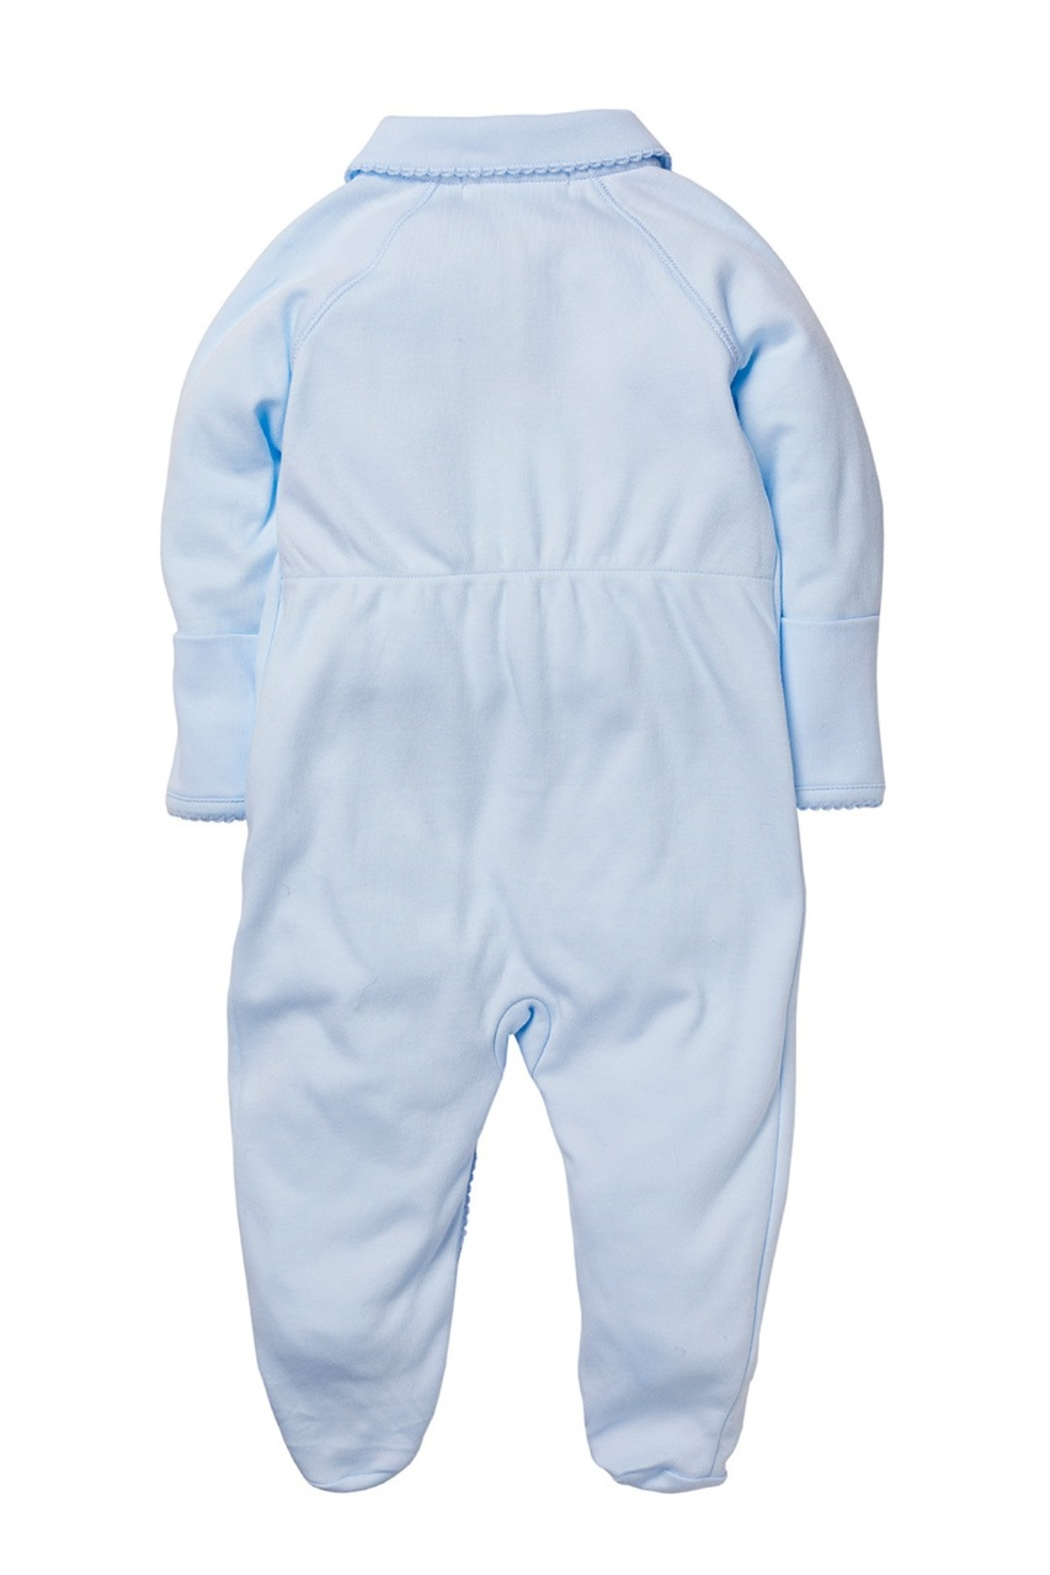 Marie Chantal Angel Onesie With Mittens - Front Full Image